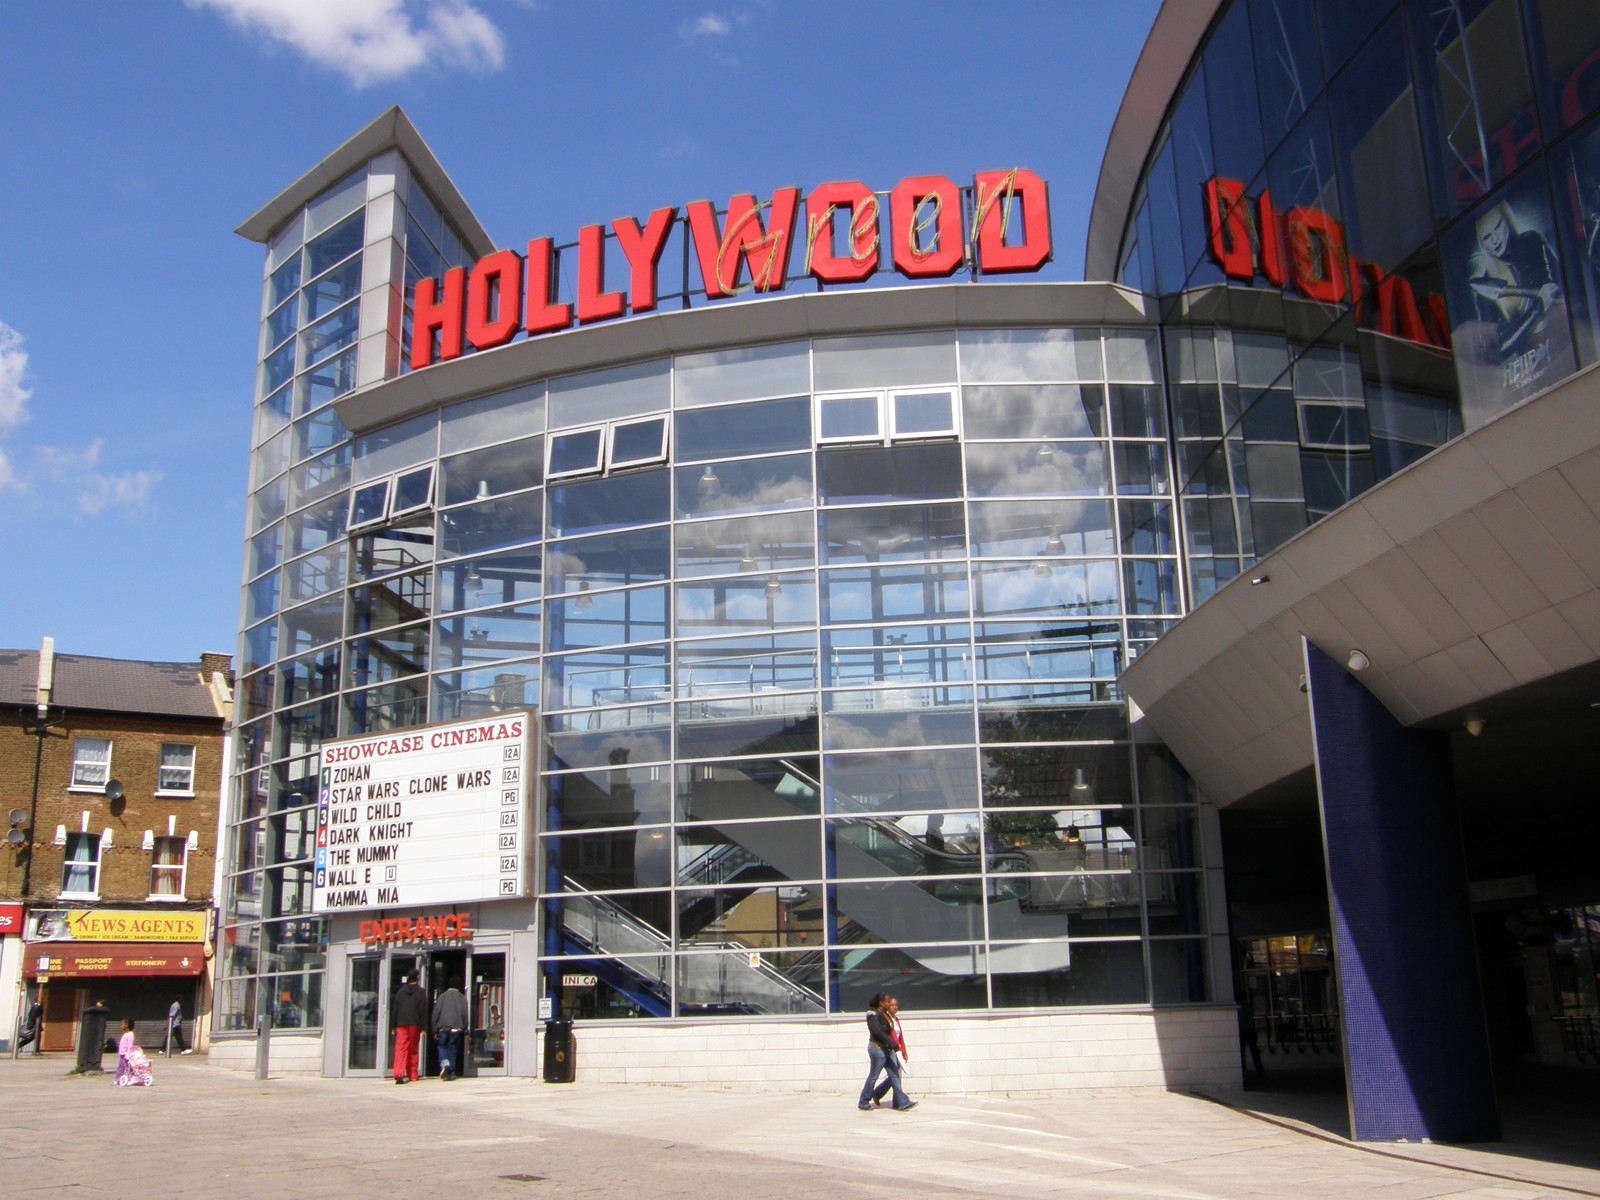 The Hollywood Cinema